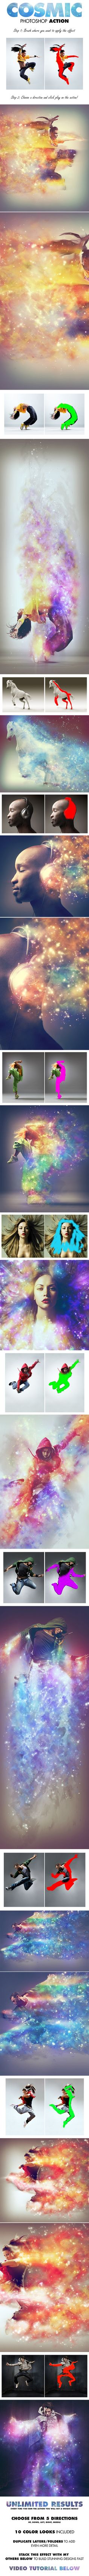 Cosmic Photoshop Action - Create this highly detailed effect from your photos with little effort at all. Make sure to watch the customisation tutorial on how to get the most out of this effect. The action has been tested and working on Photoshop CS4,CS5,CS6,CC+